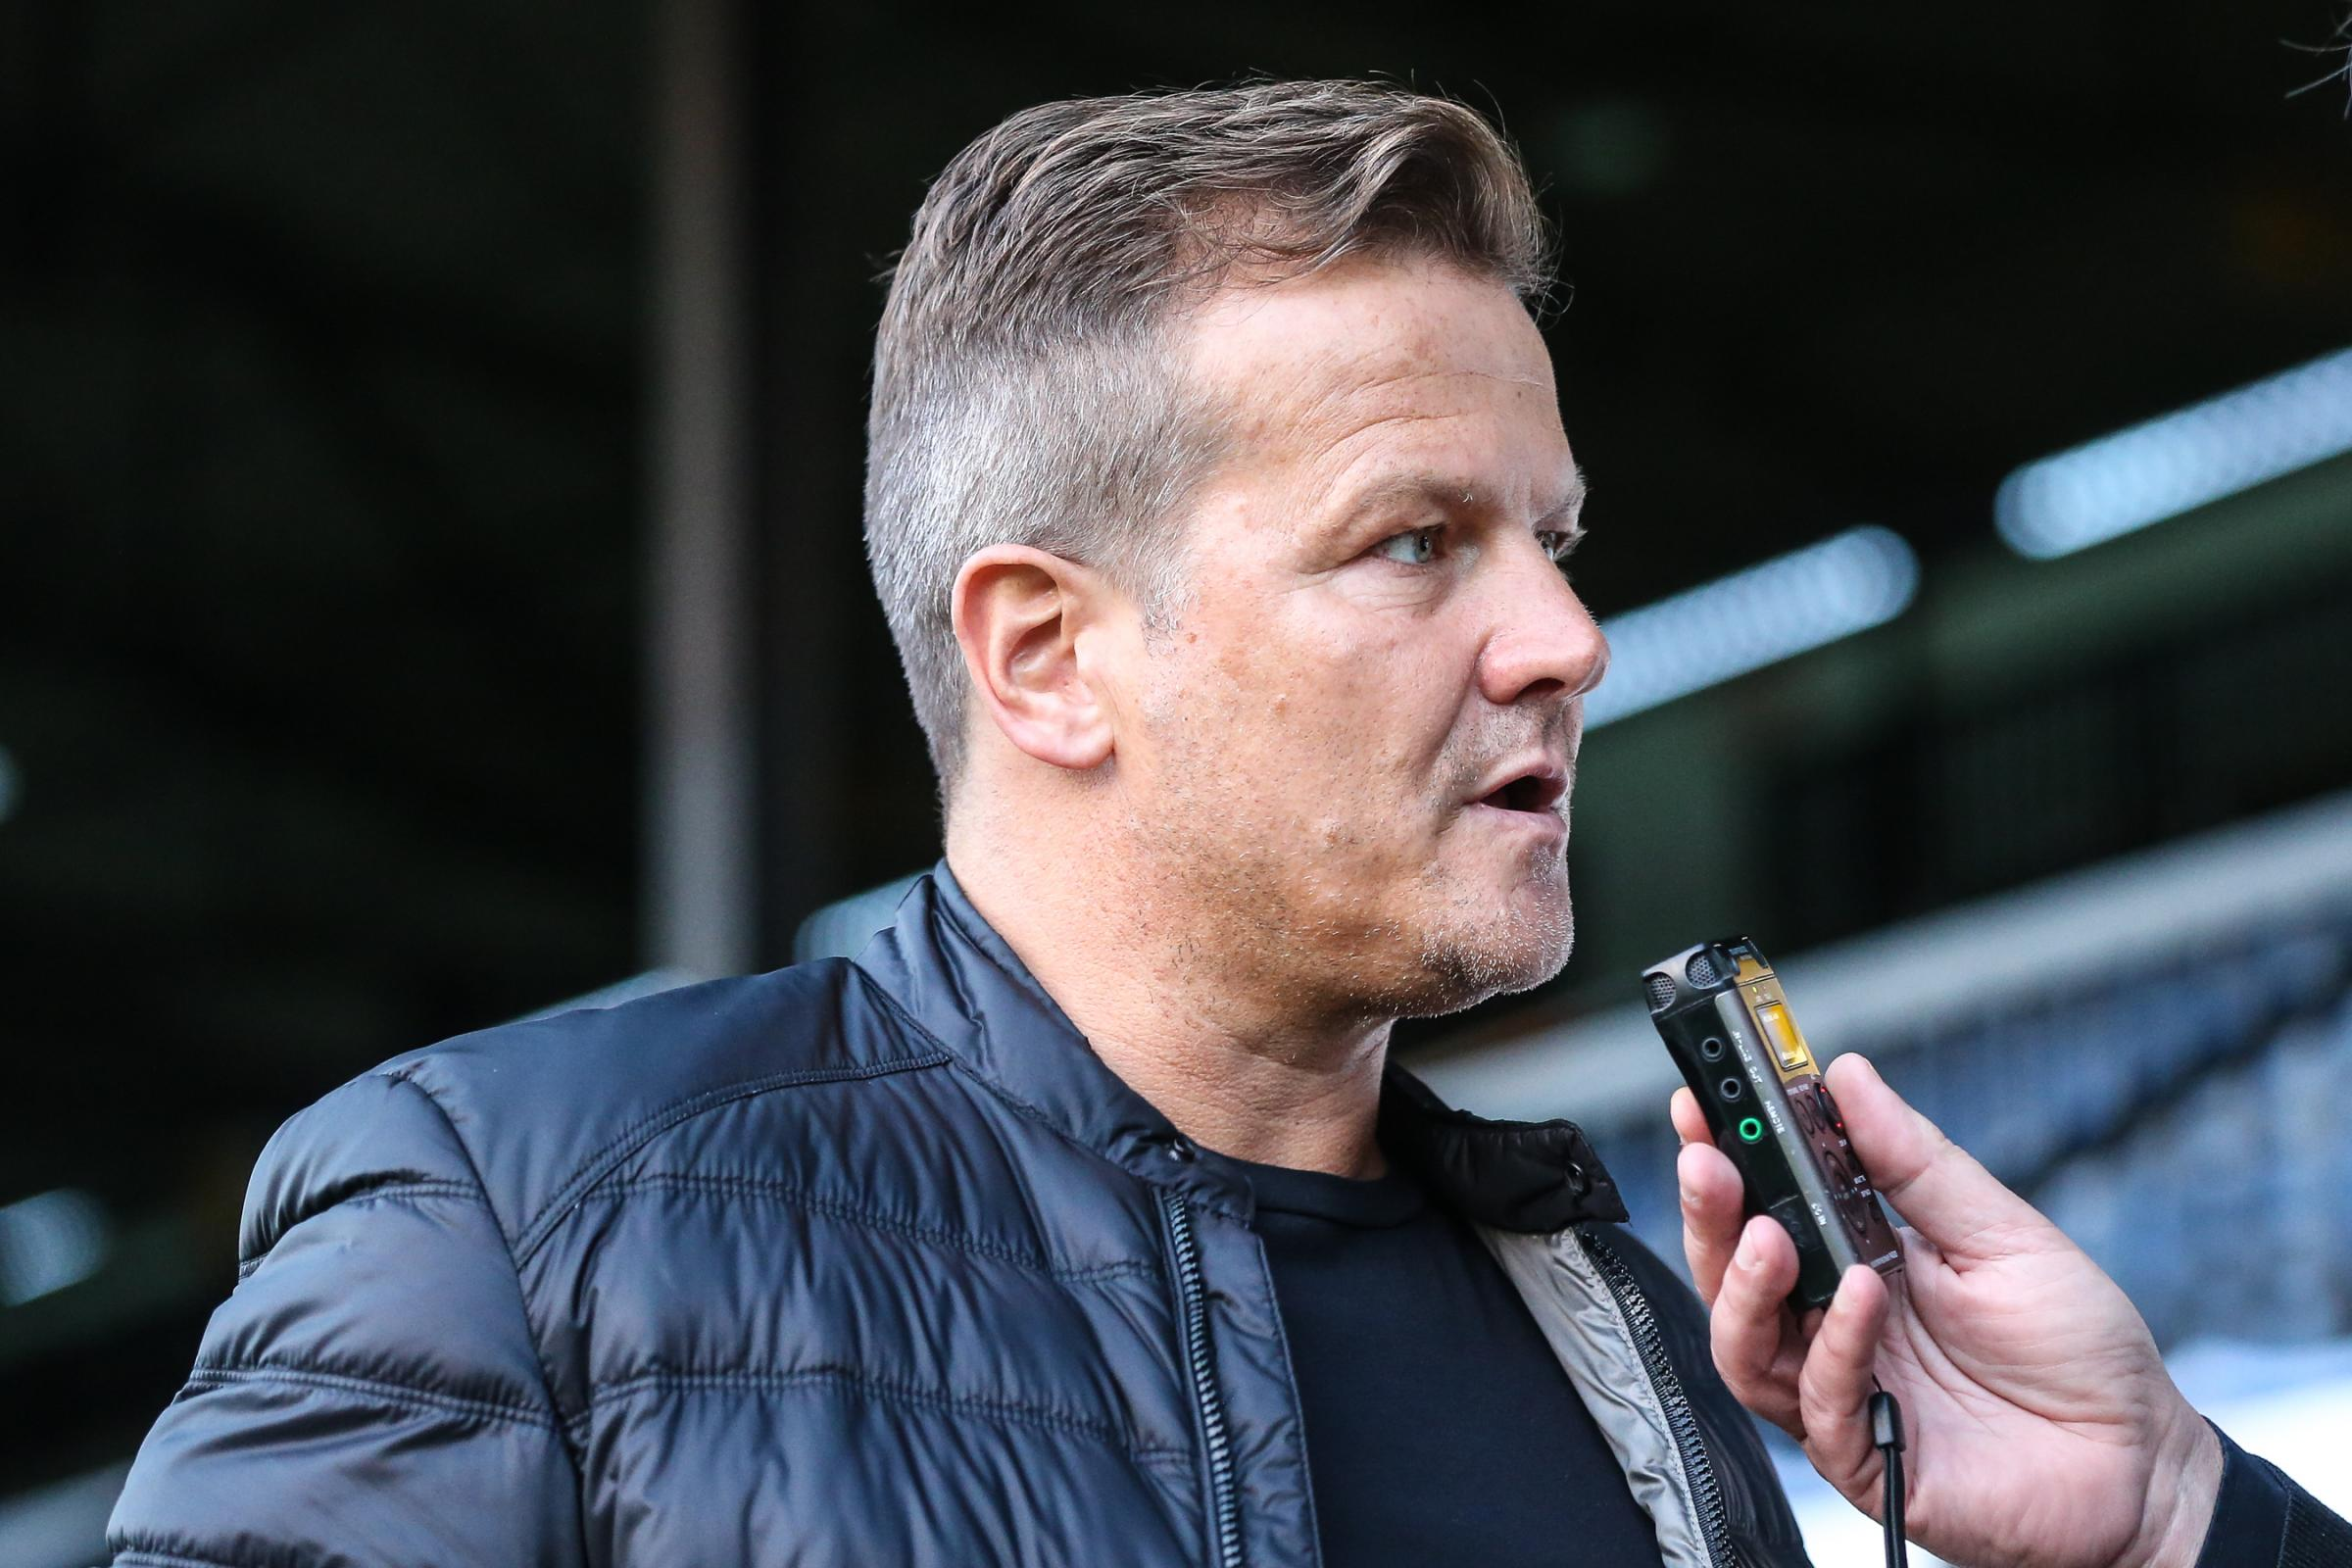 Forest Green Rovers manager, Mark Cooper being interviewed before the match during the EFL Sky Bet League 2 match between Cambridge United and Forest Green Rovers at the Cambs Glass Stadium, Cambridge, England on 2 October 2018.